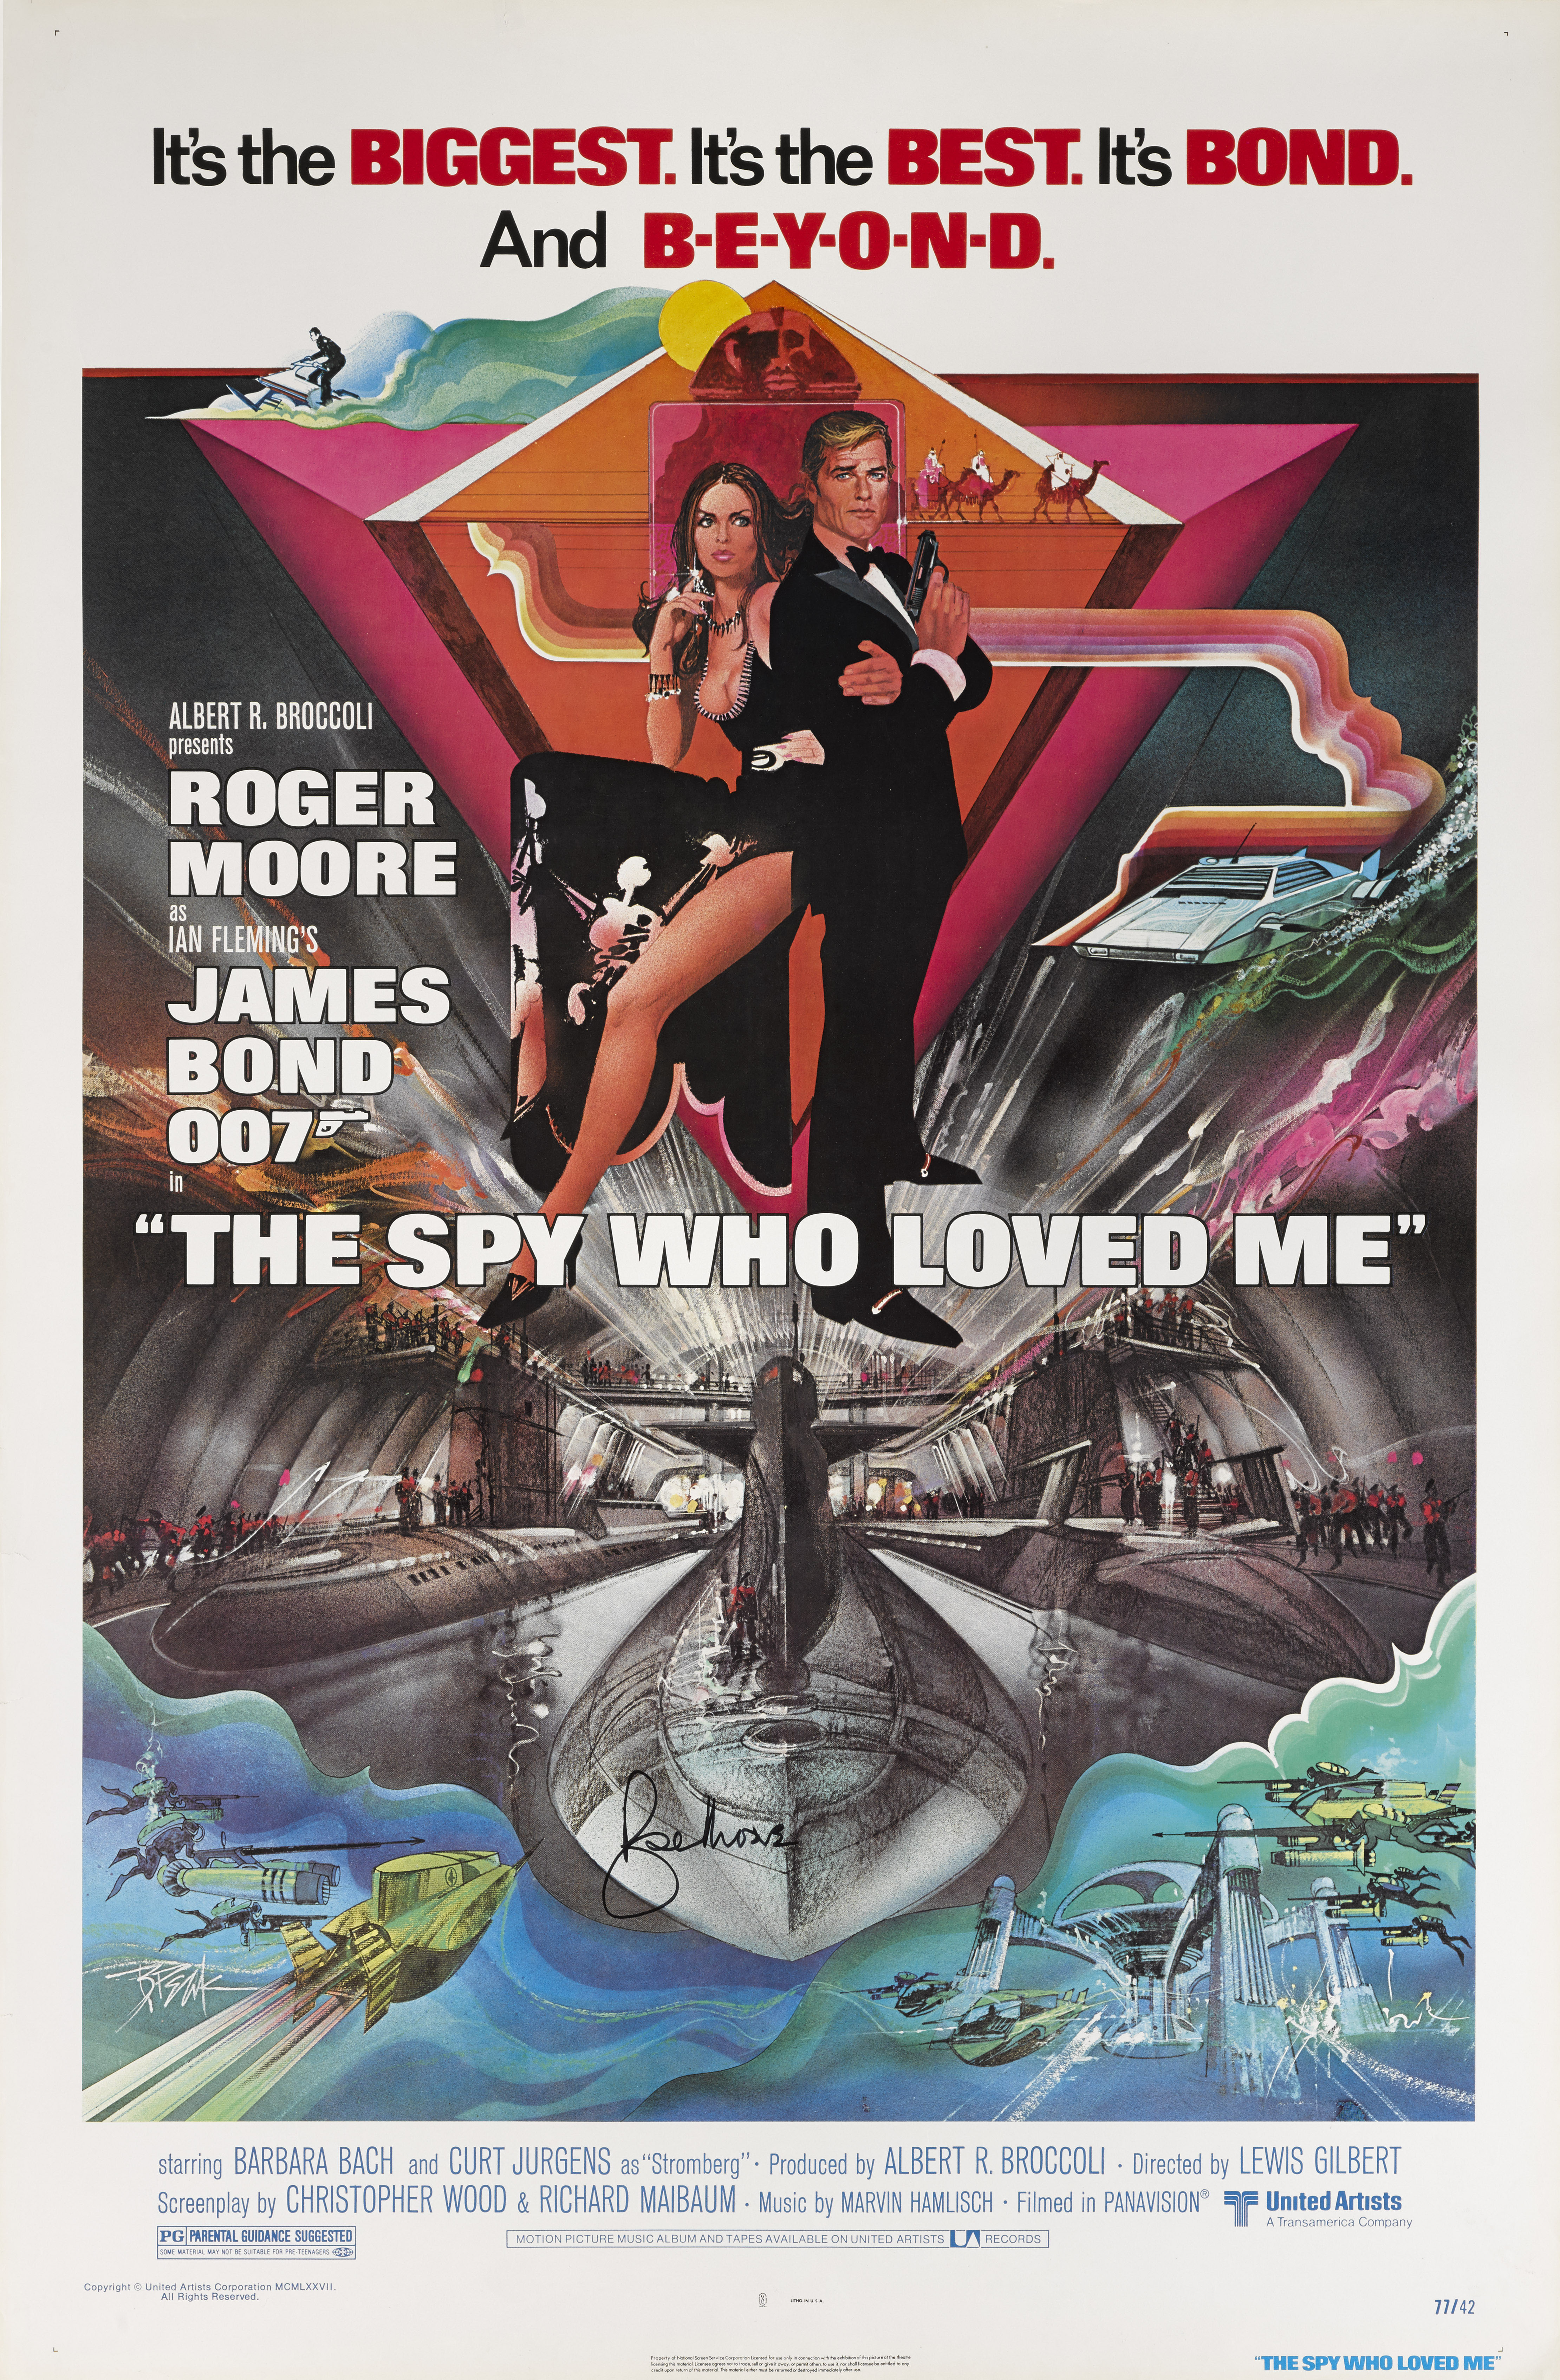 THE SPY WHO LOVED ME (1977) POSTER, US, SIGNED BY  ROGER MOORE